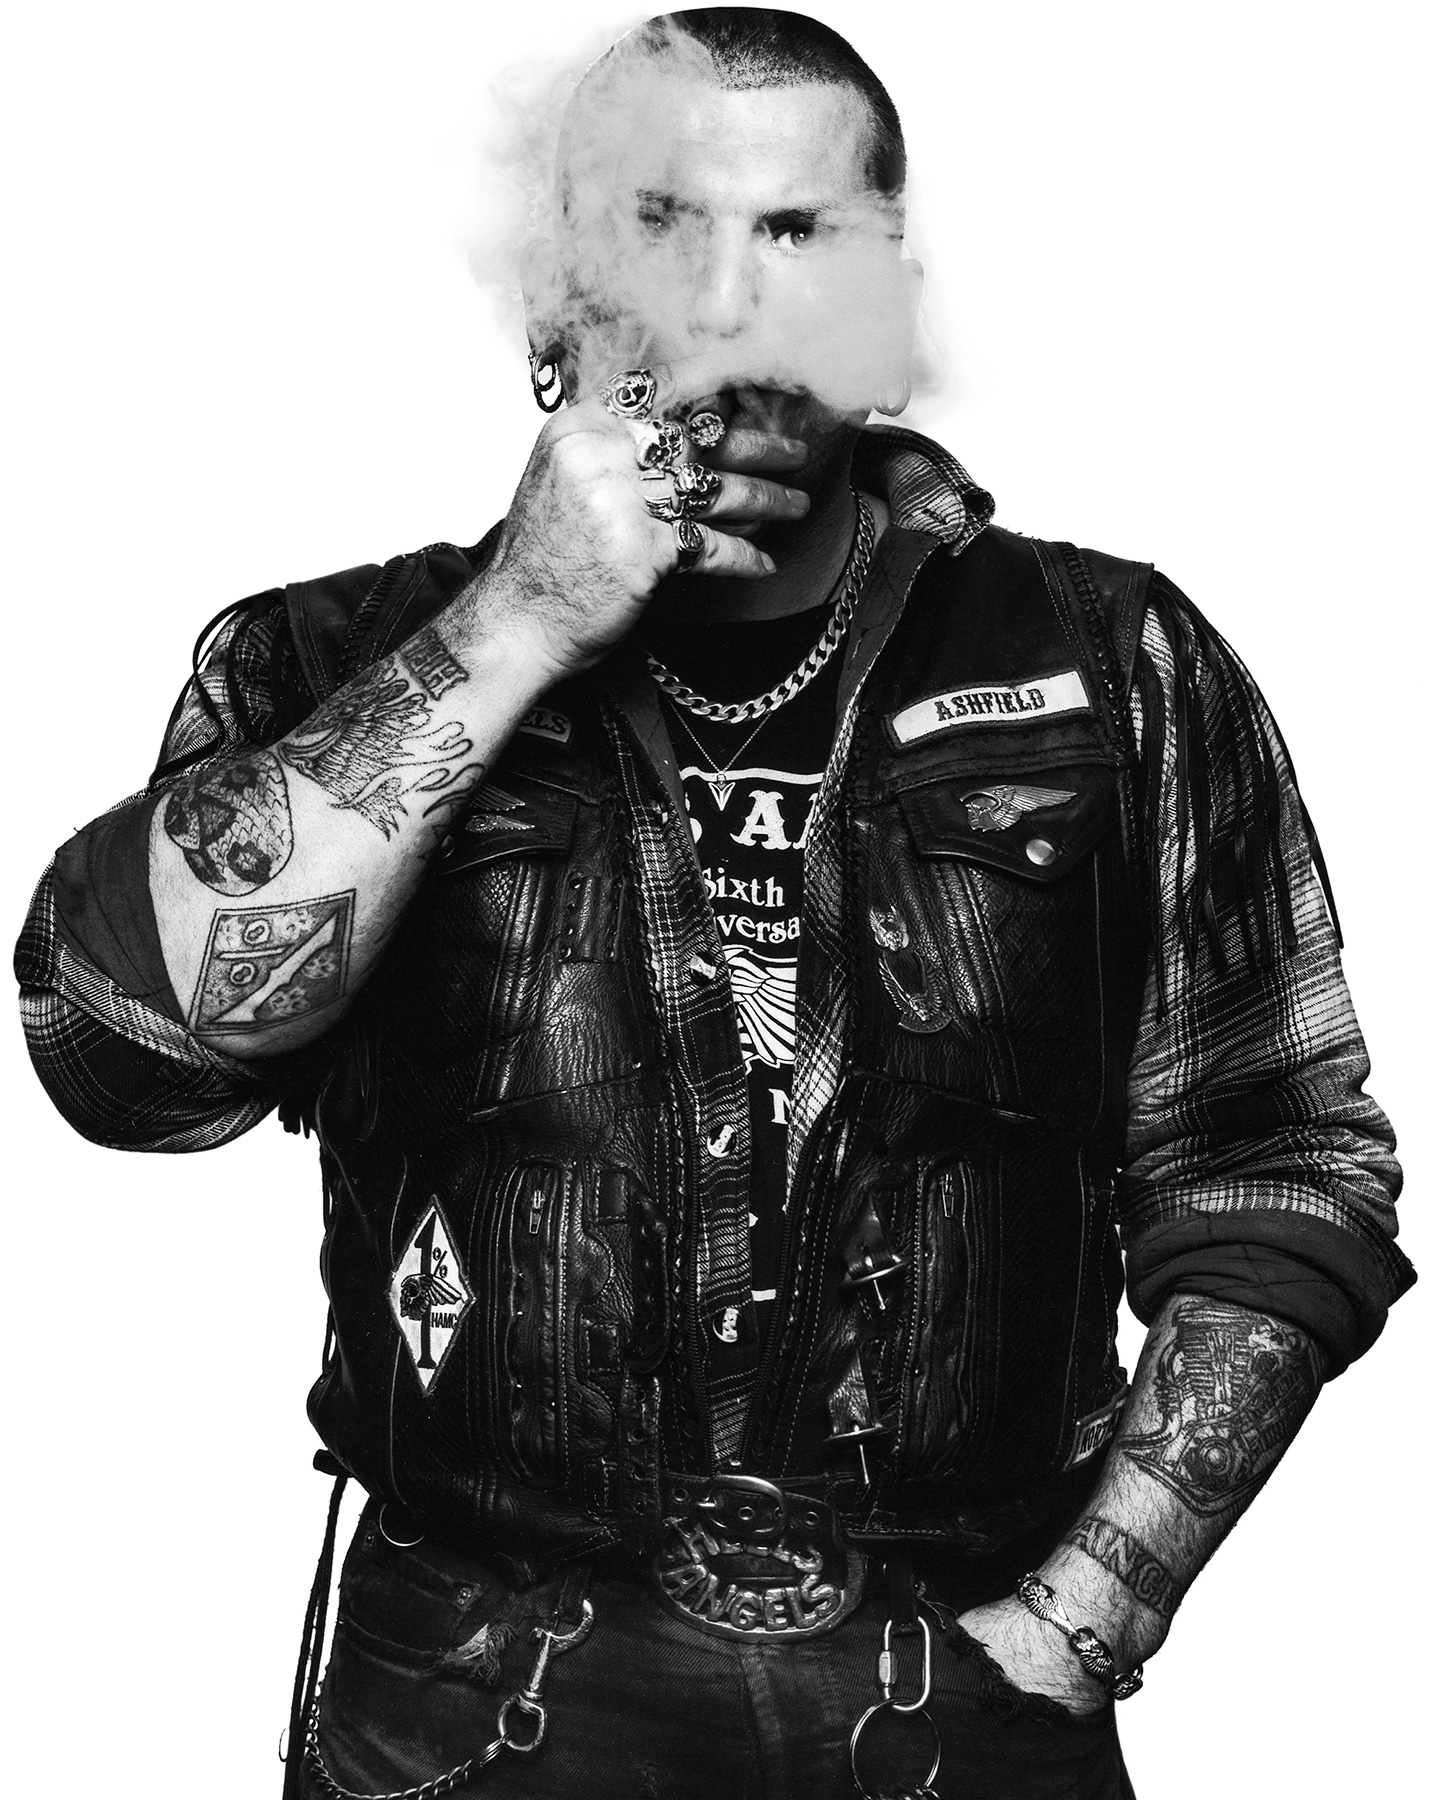 Hells Angels Motorcycle Club – Andrew Shaylor